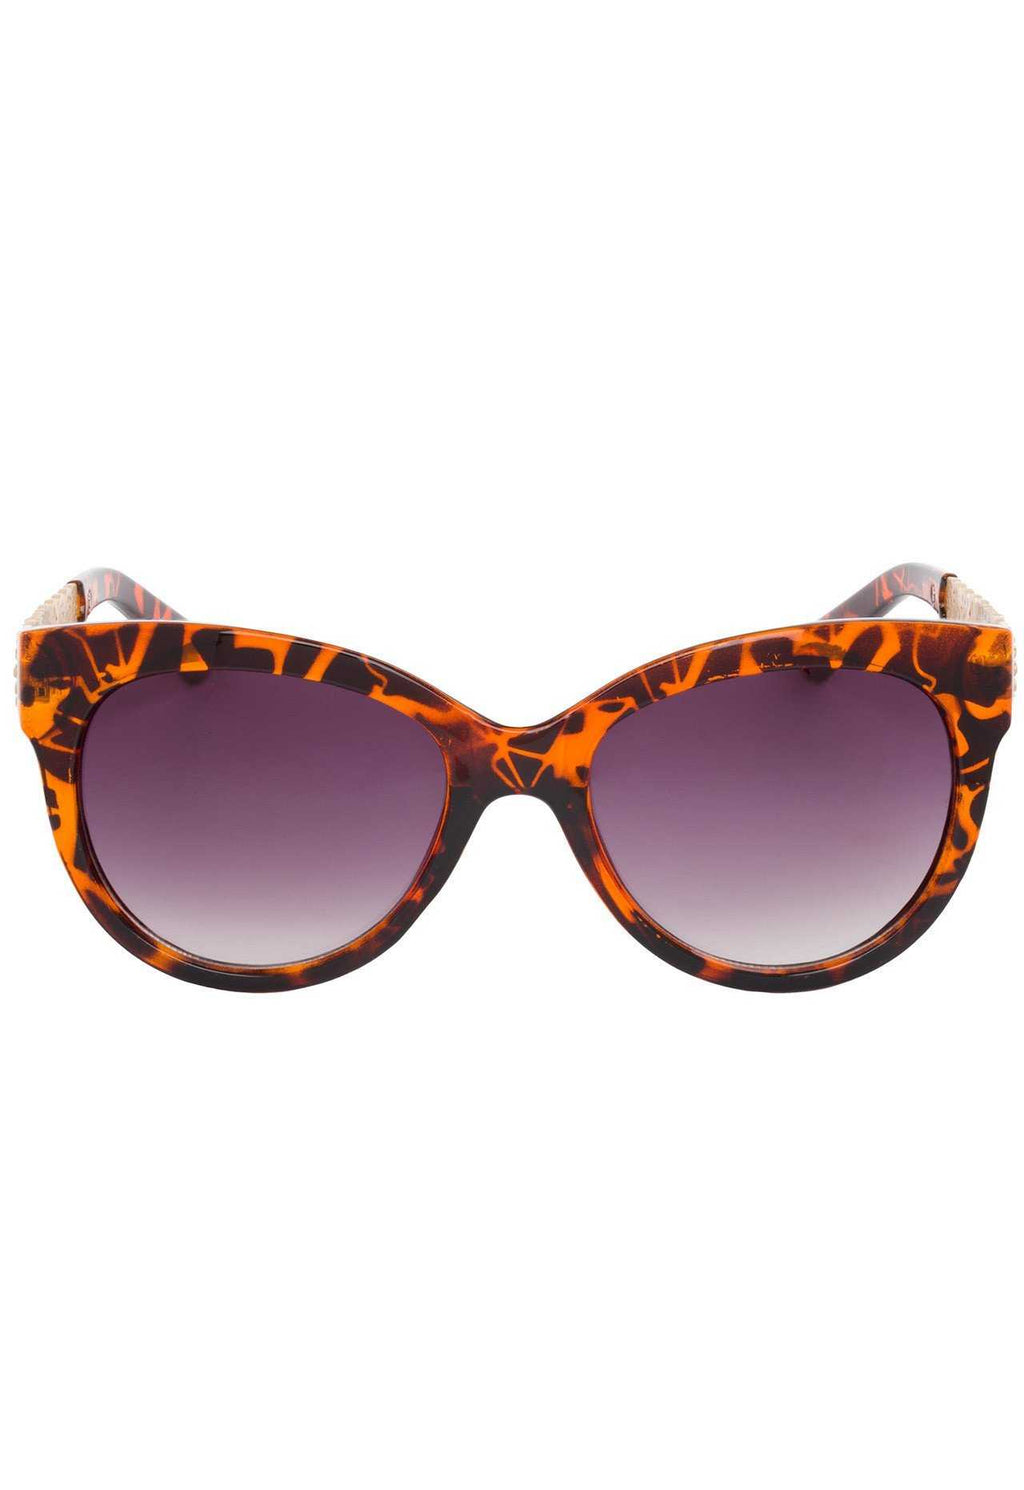 Accessories - Crimson Sunglasses In Tiger